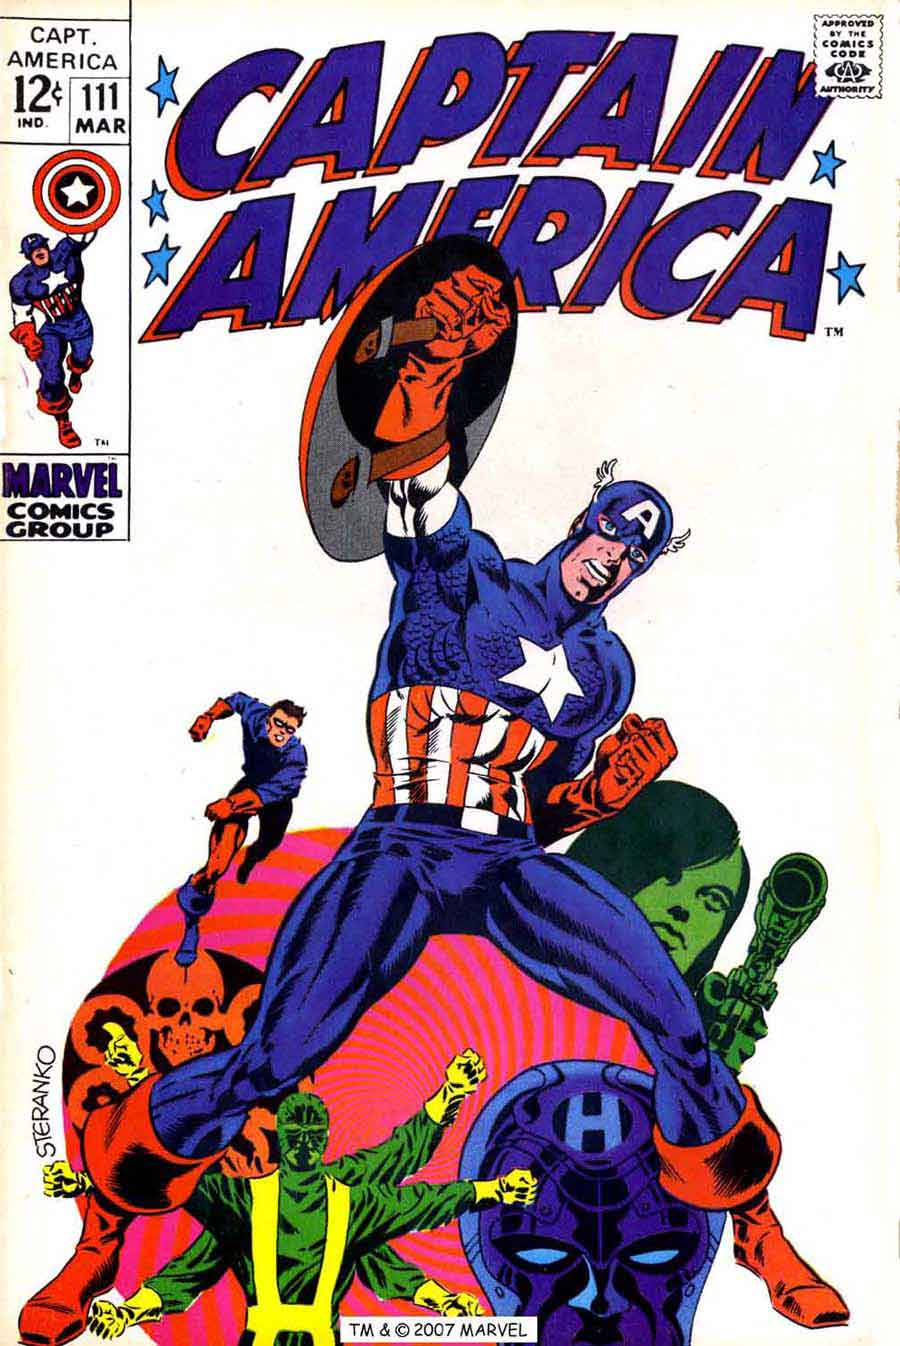 Captain America v1 111 marvel comic book cover art by Jim Steranko 900x1346